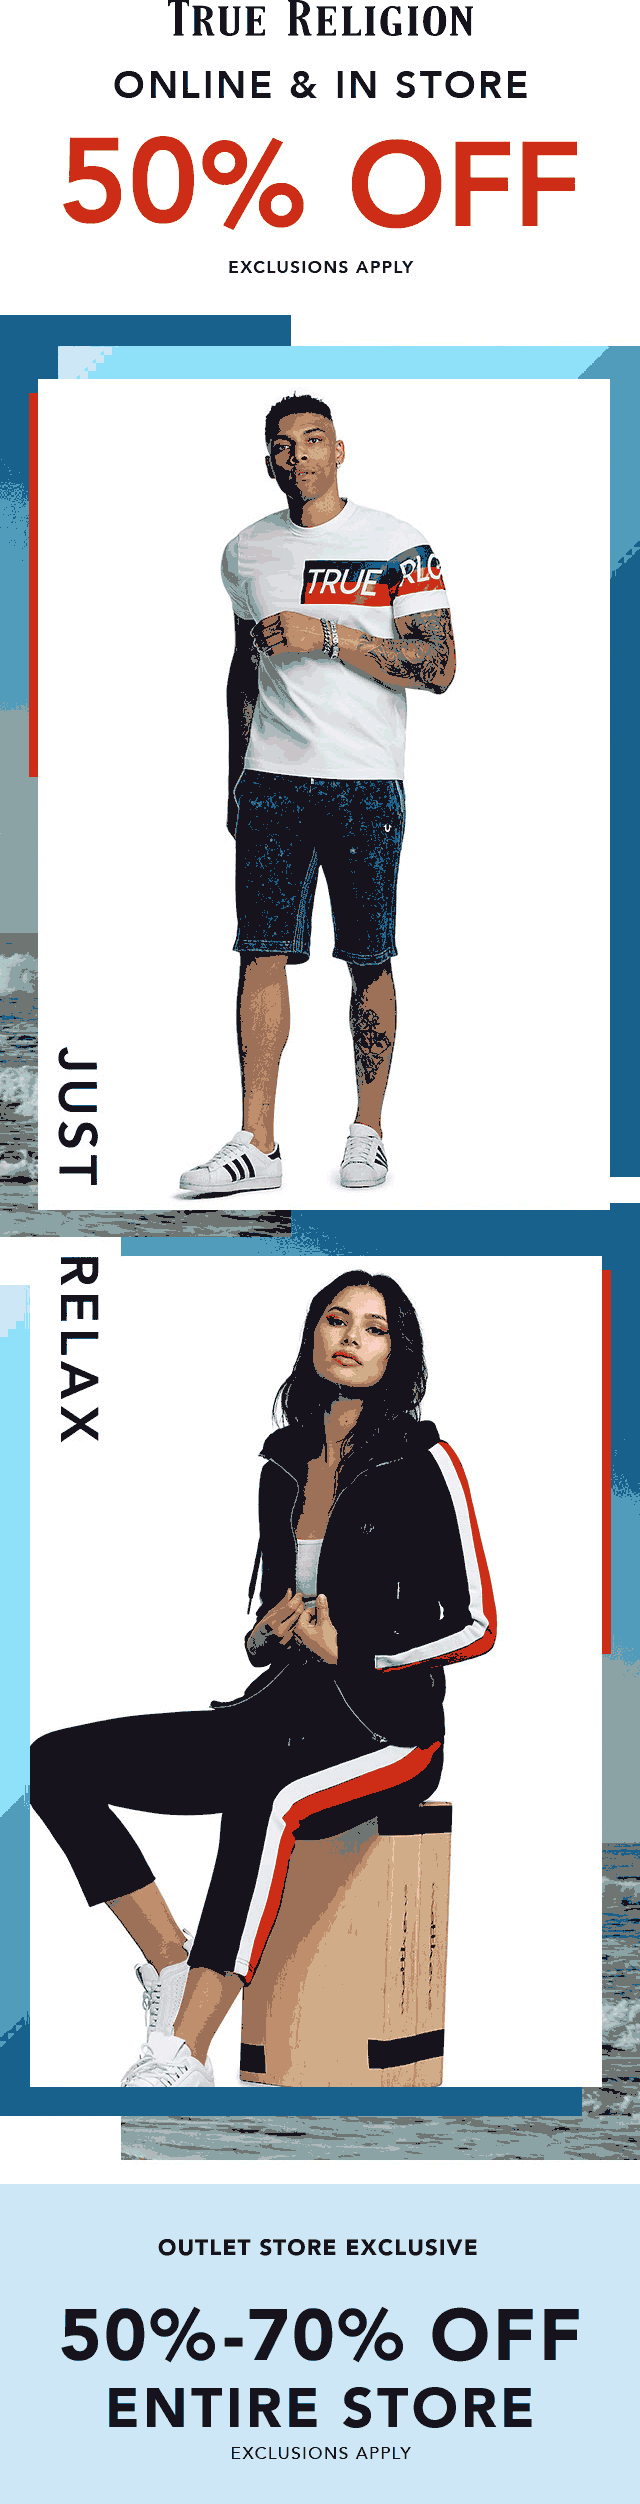 True Religion coupons & promo code for [September 2020]